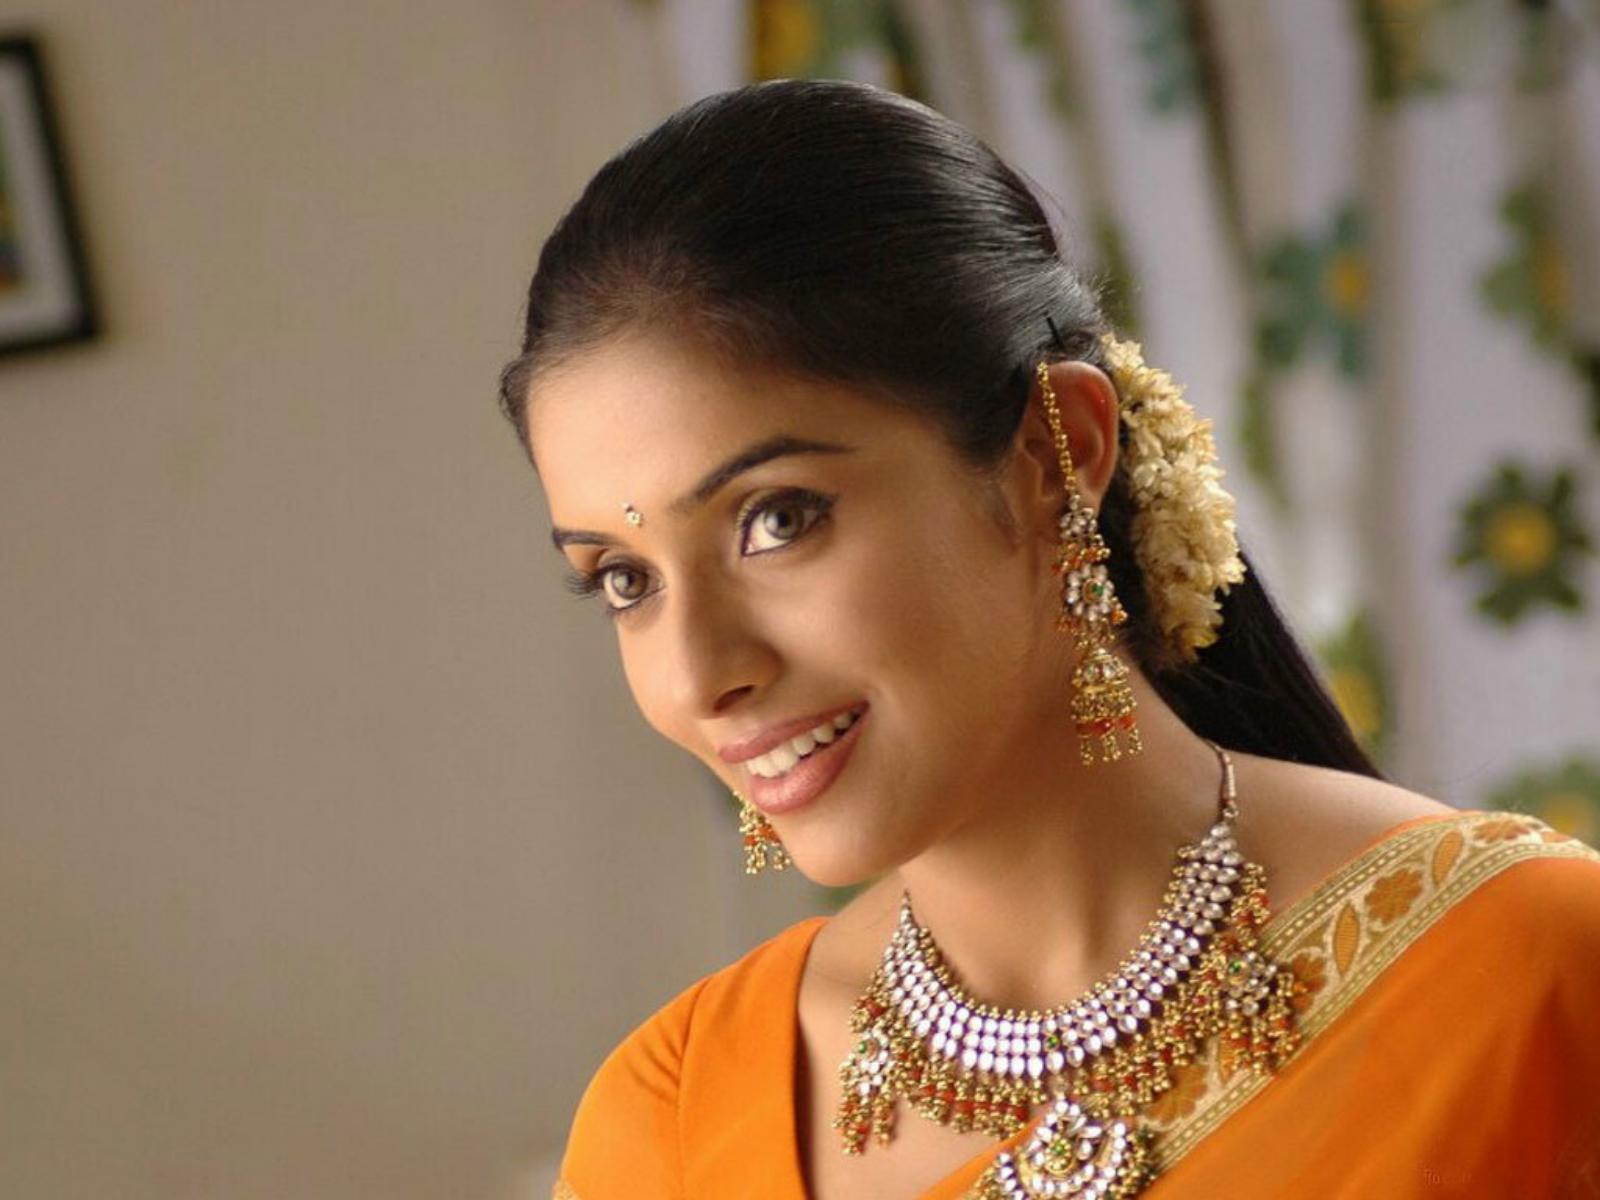 asin homely look hd wallpapers